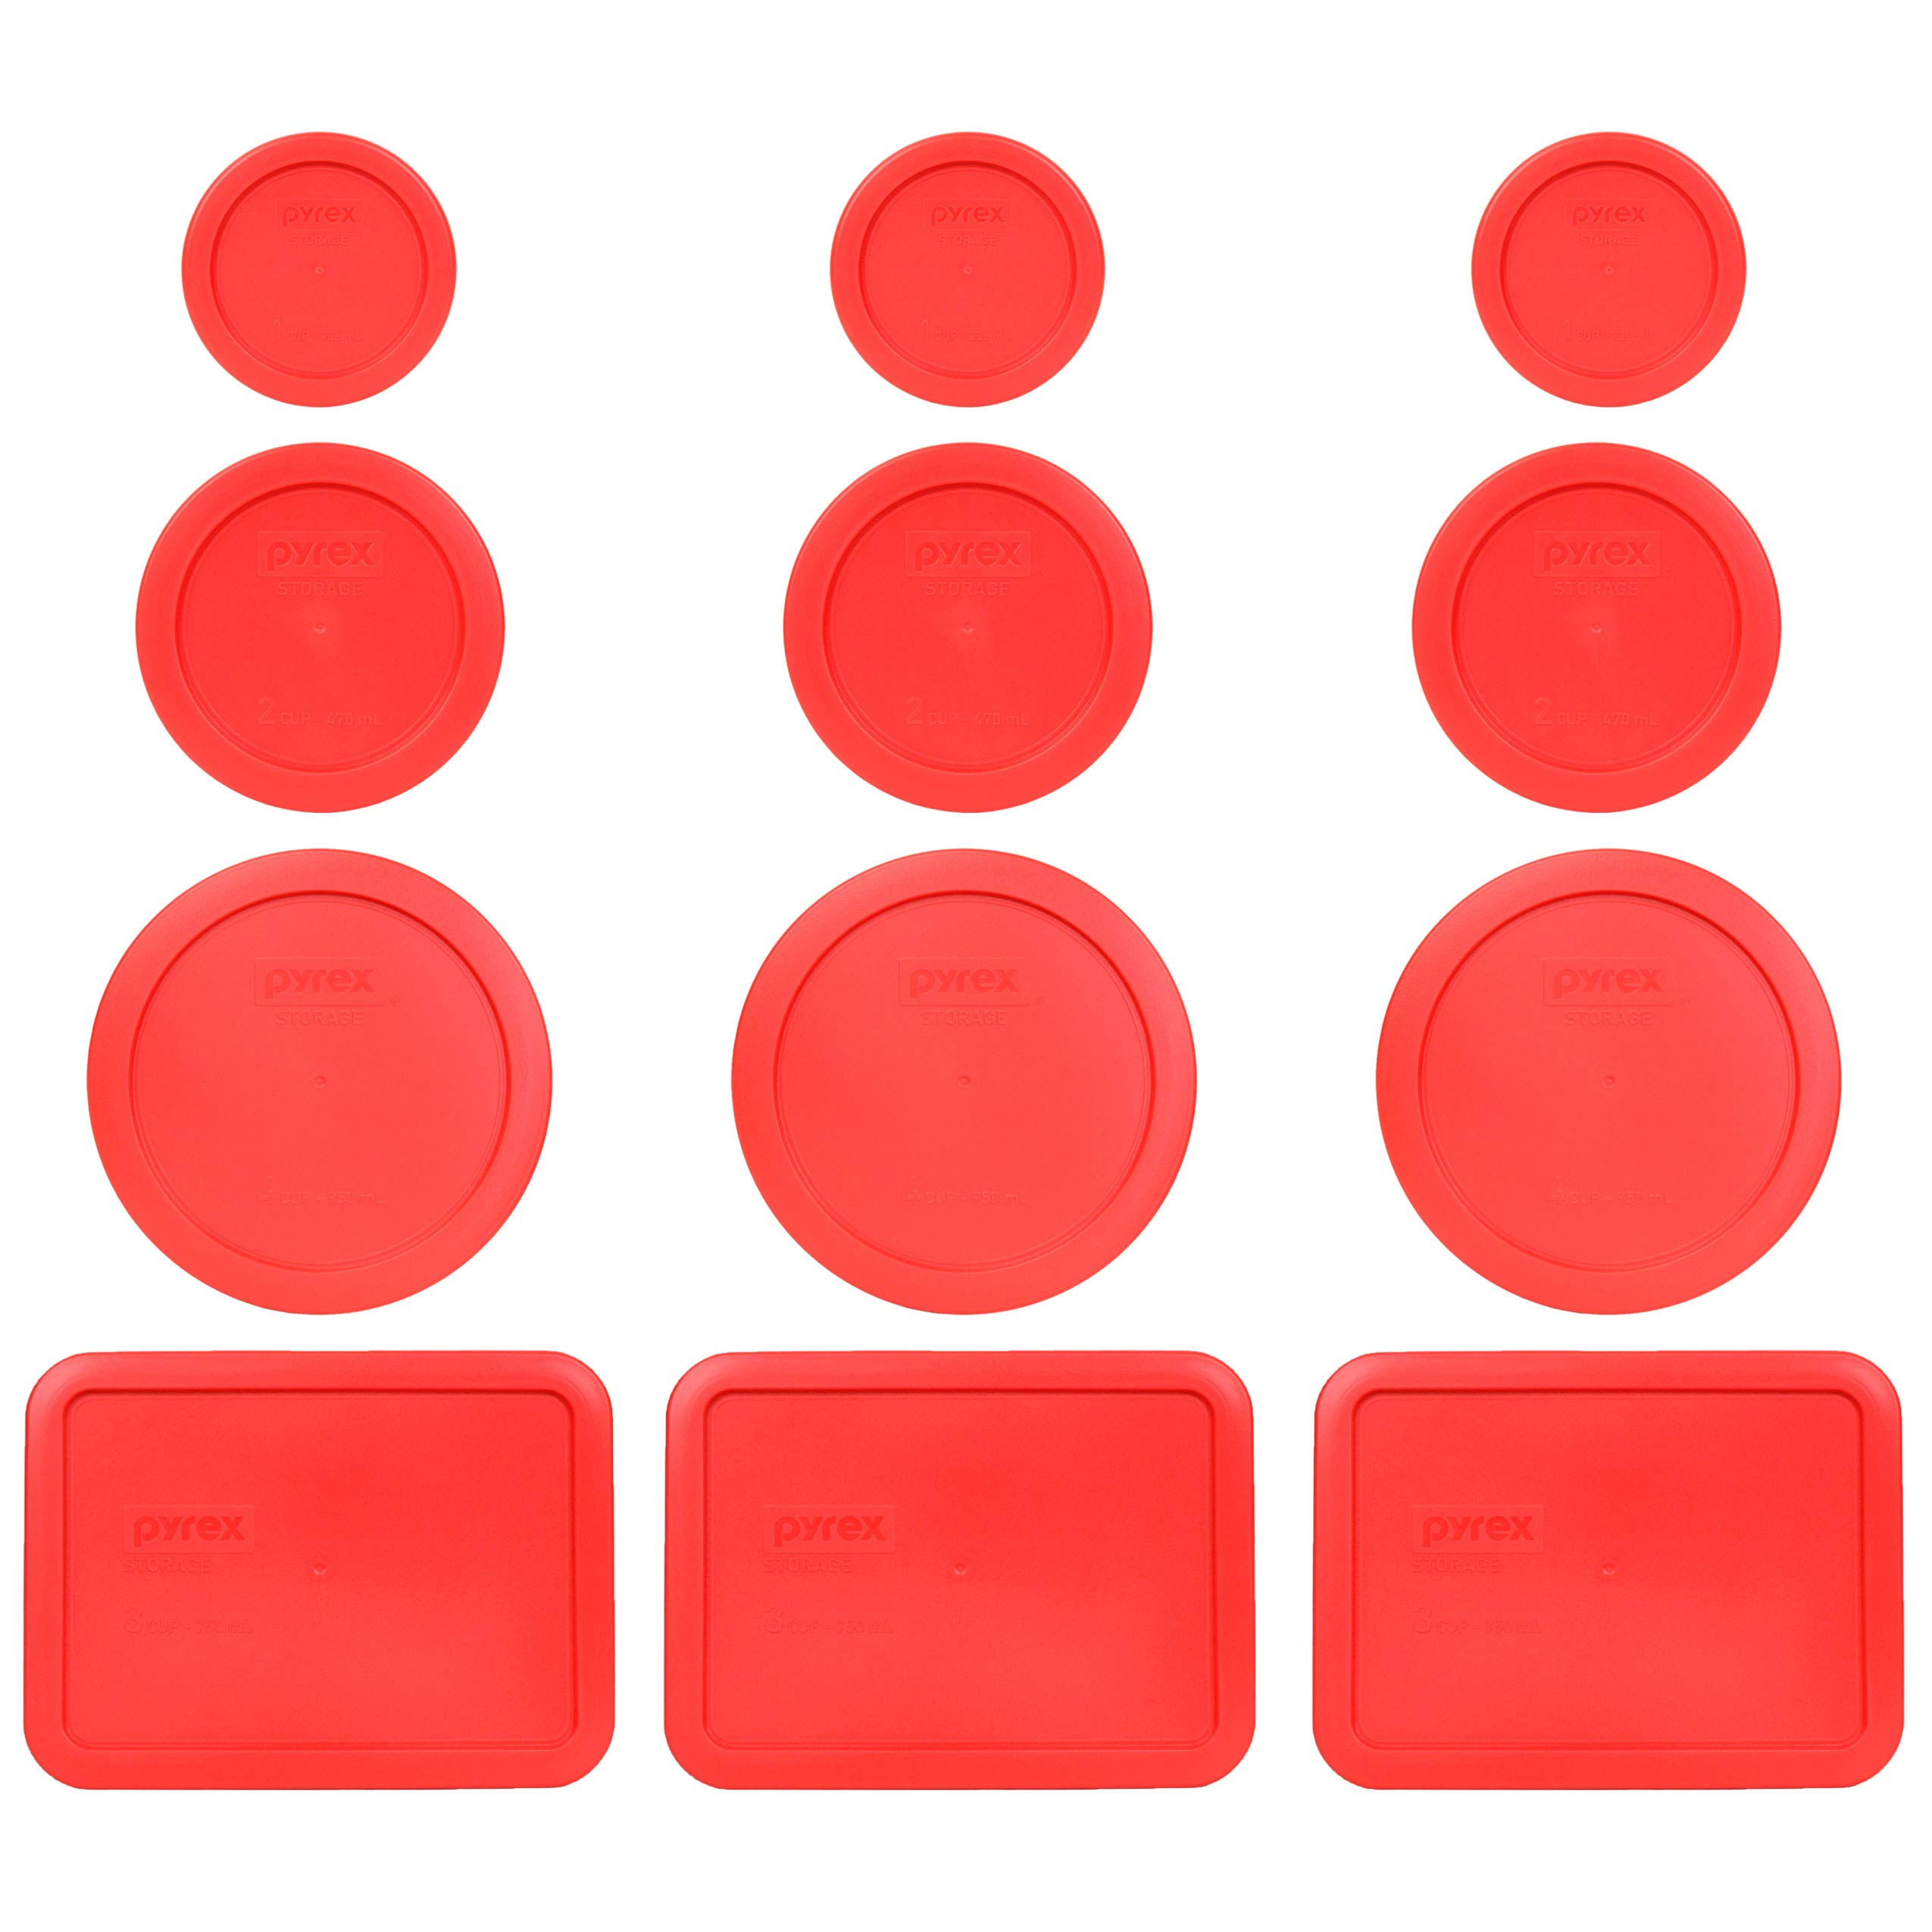 Pyrex (3) 7202-PC 1 Cup Red (3) 7200-PC 2 Cup Red (3) 7201-PC 4 Cup Red (3) 7210-PC 3 Cup Red Replacement Food Storage Lids